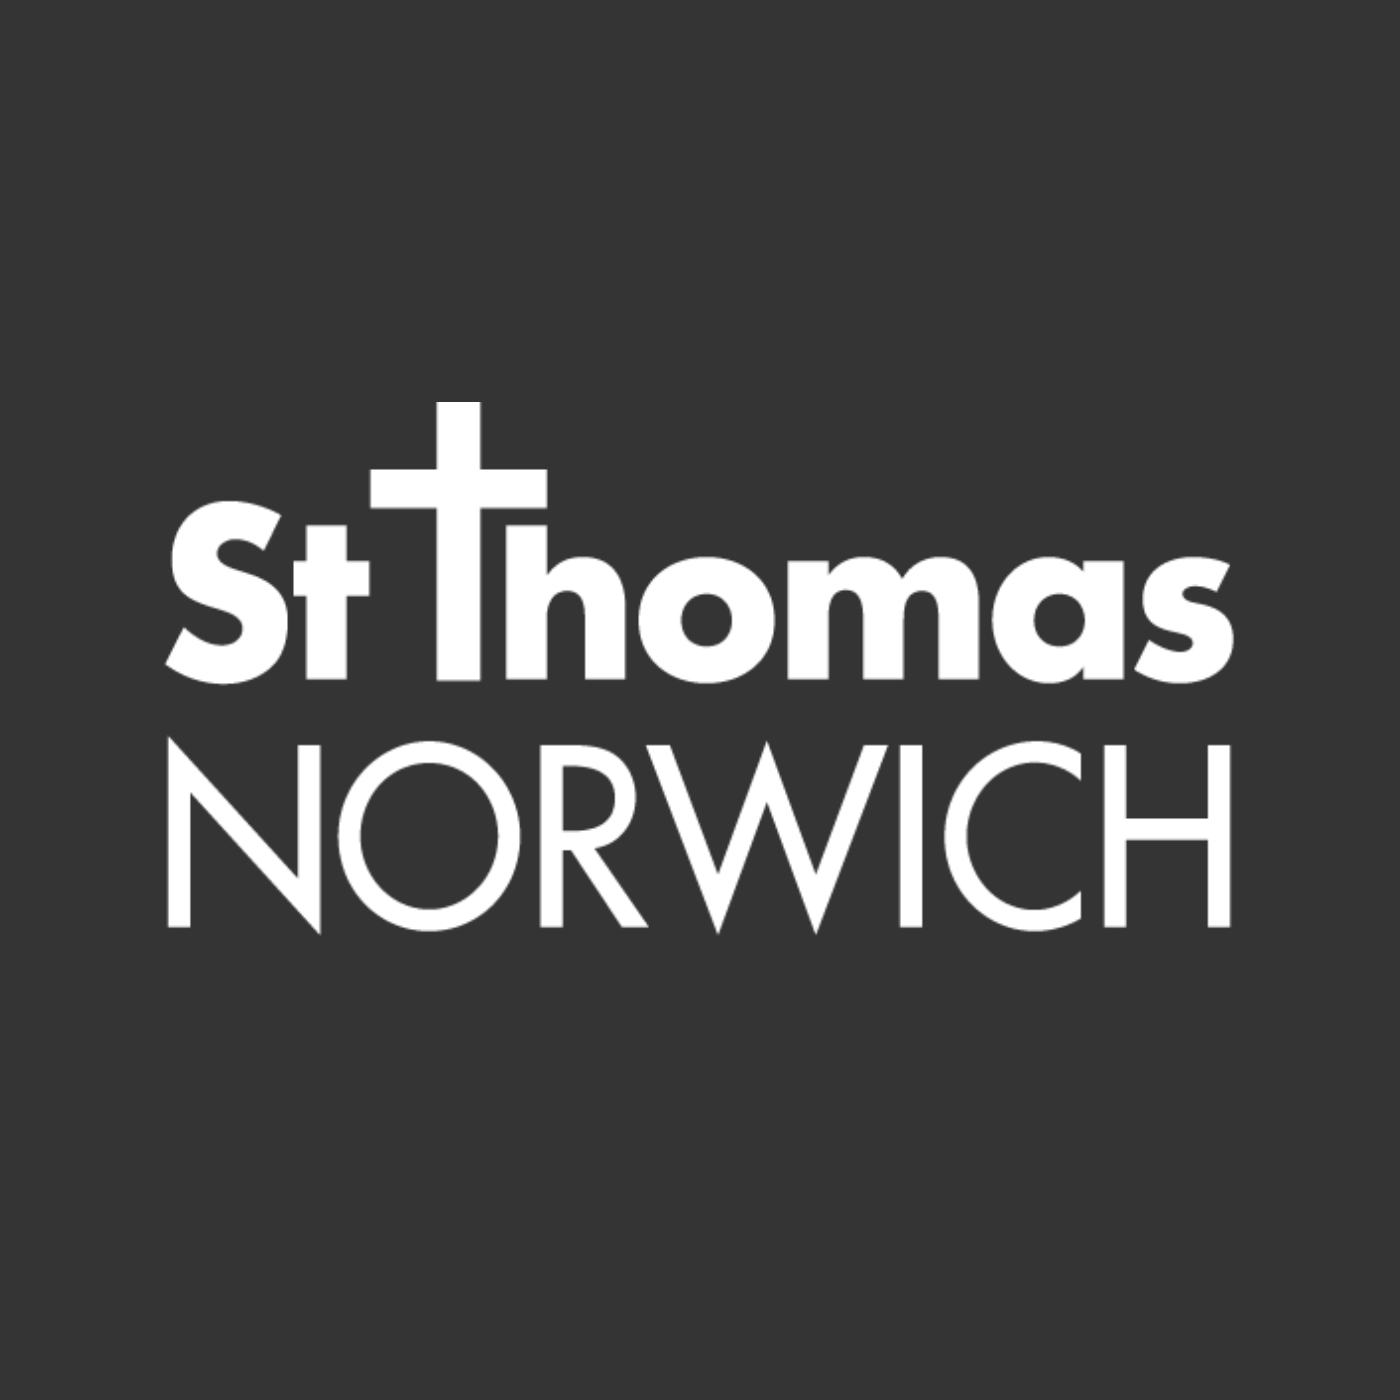 St Thomas, Norwich: Sunday Services